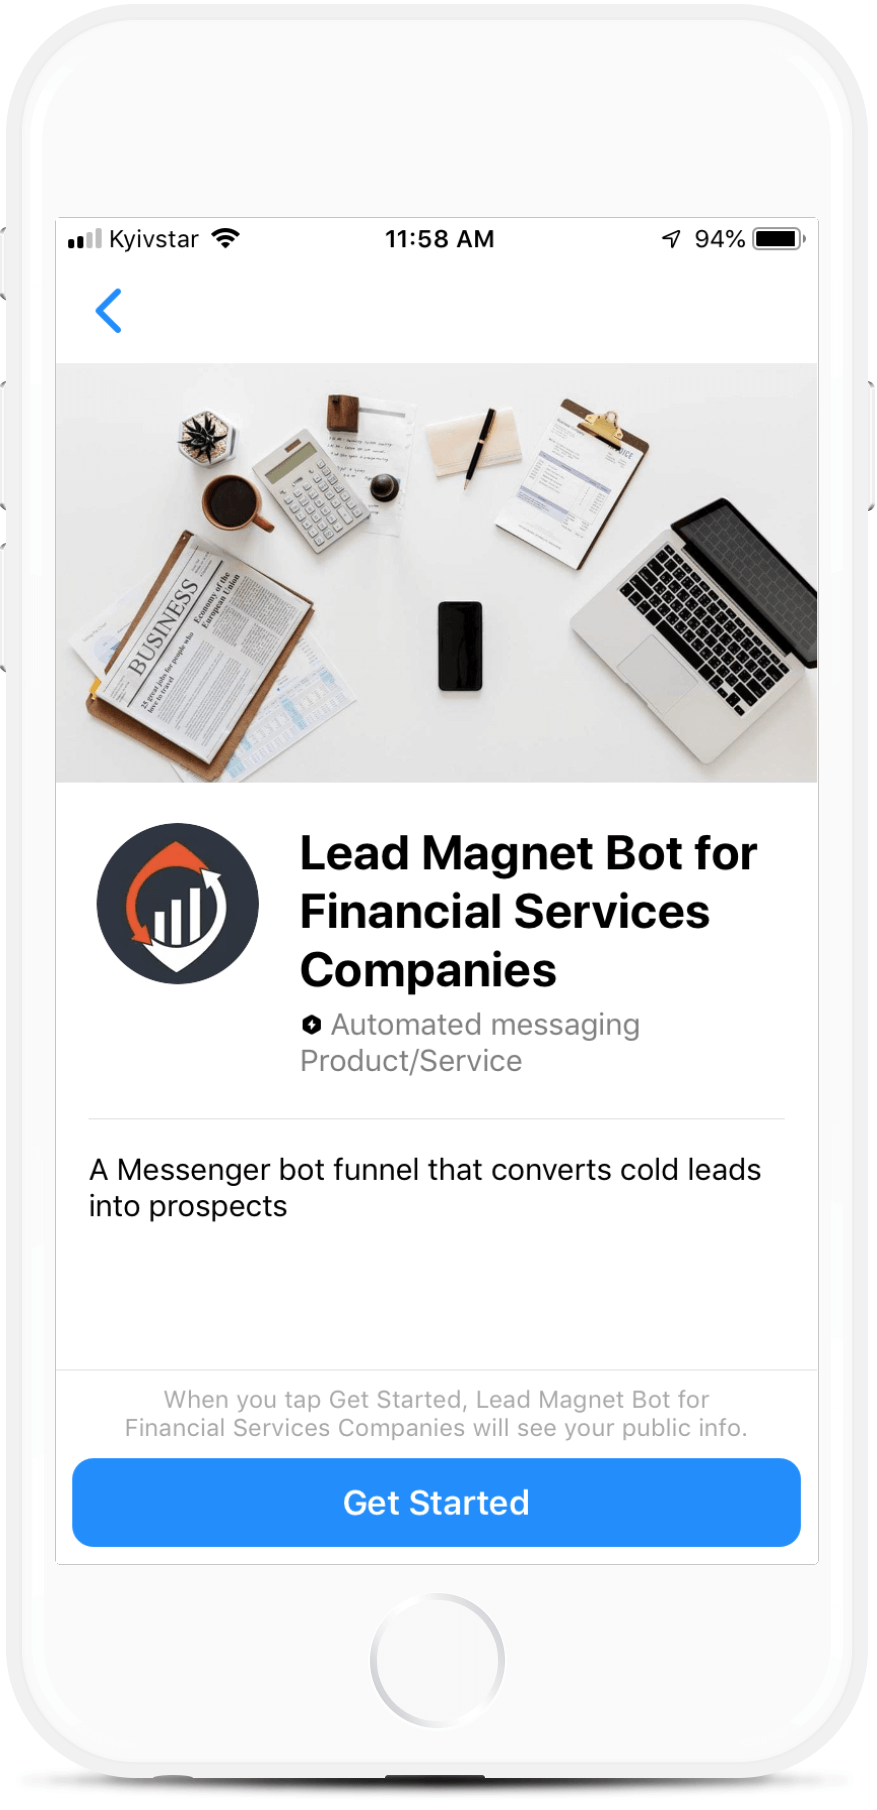 Full-Service Accounting Firm Lead Generation bot screenshot